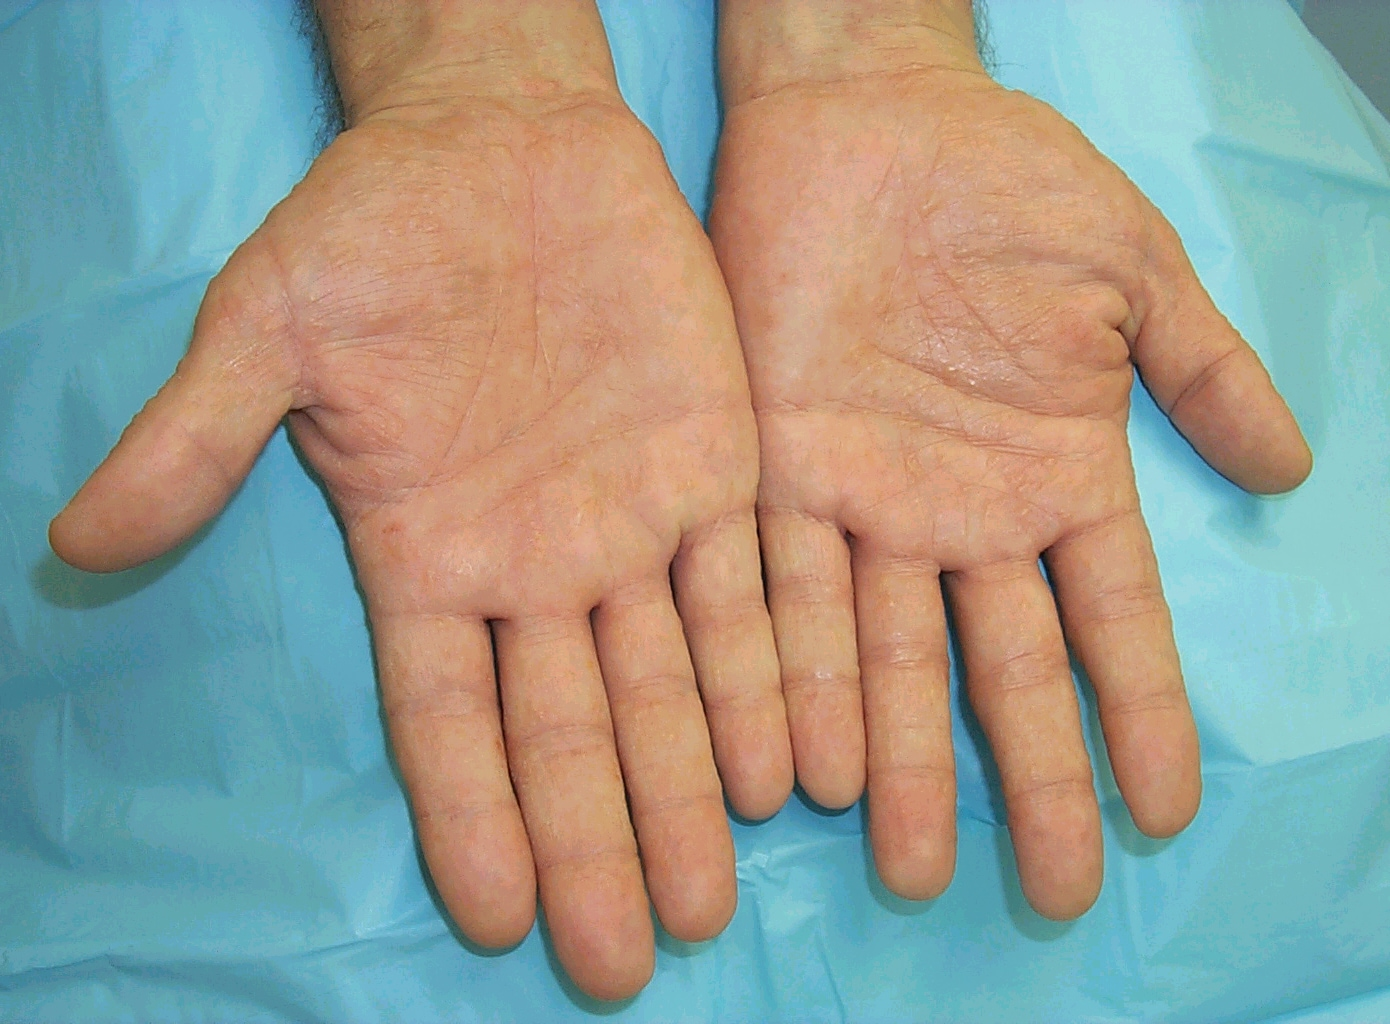 Dry Cracking Skin on the Hands & Fingers | LIVESTRONG.COM